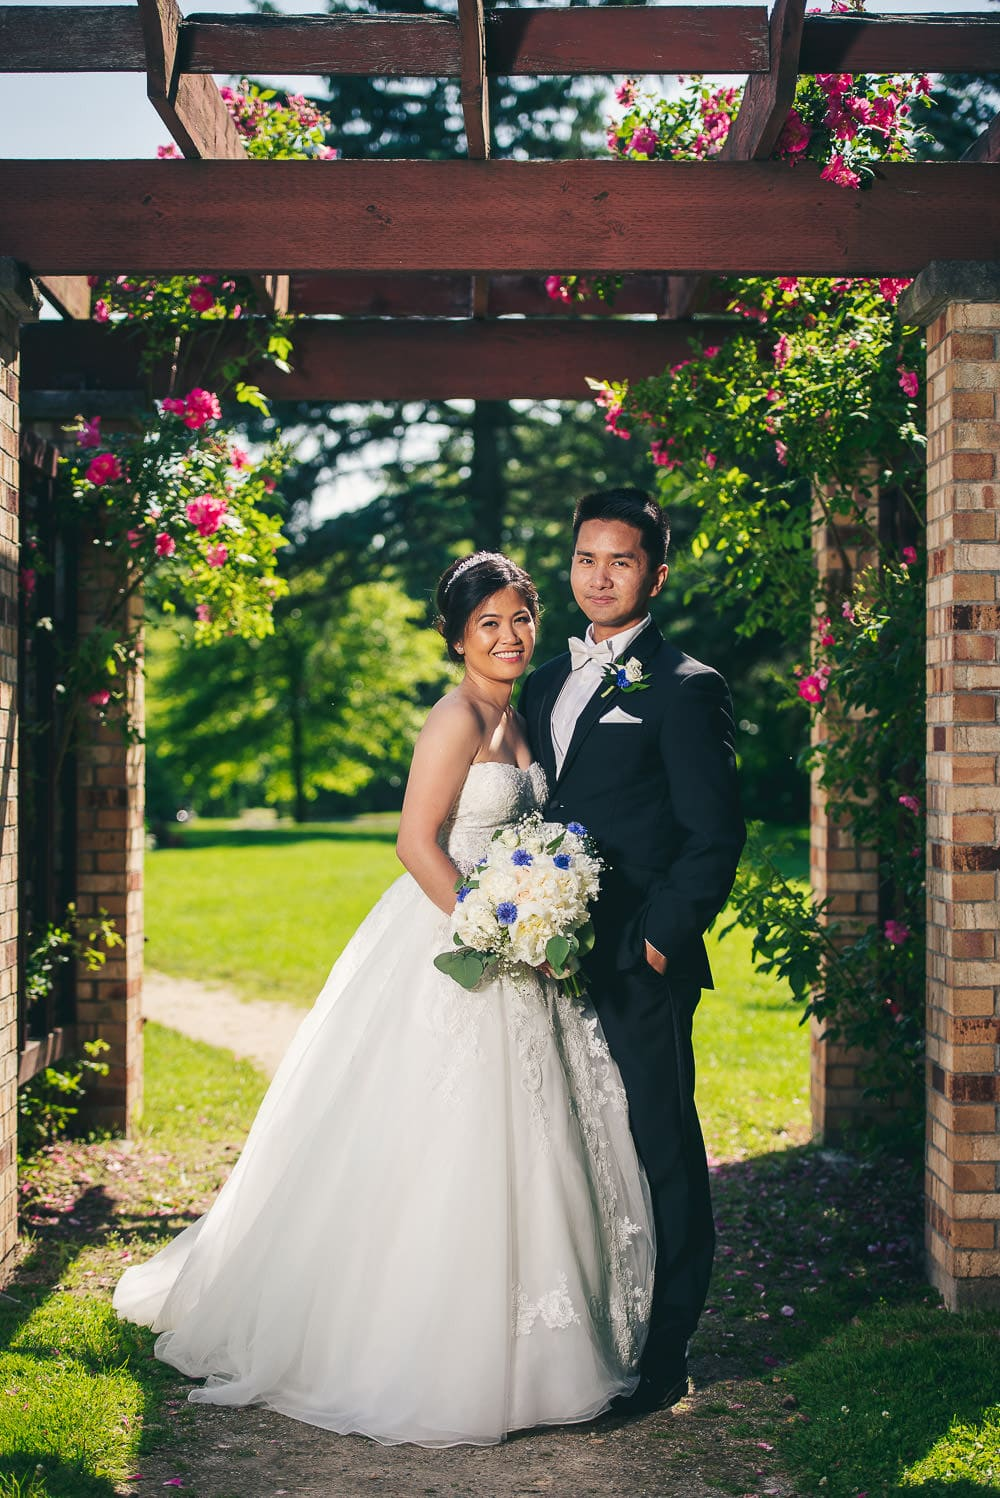 Civic gardens London Ontario wedding photo bridal portrait